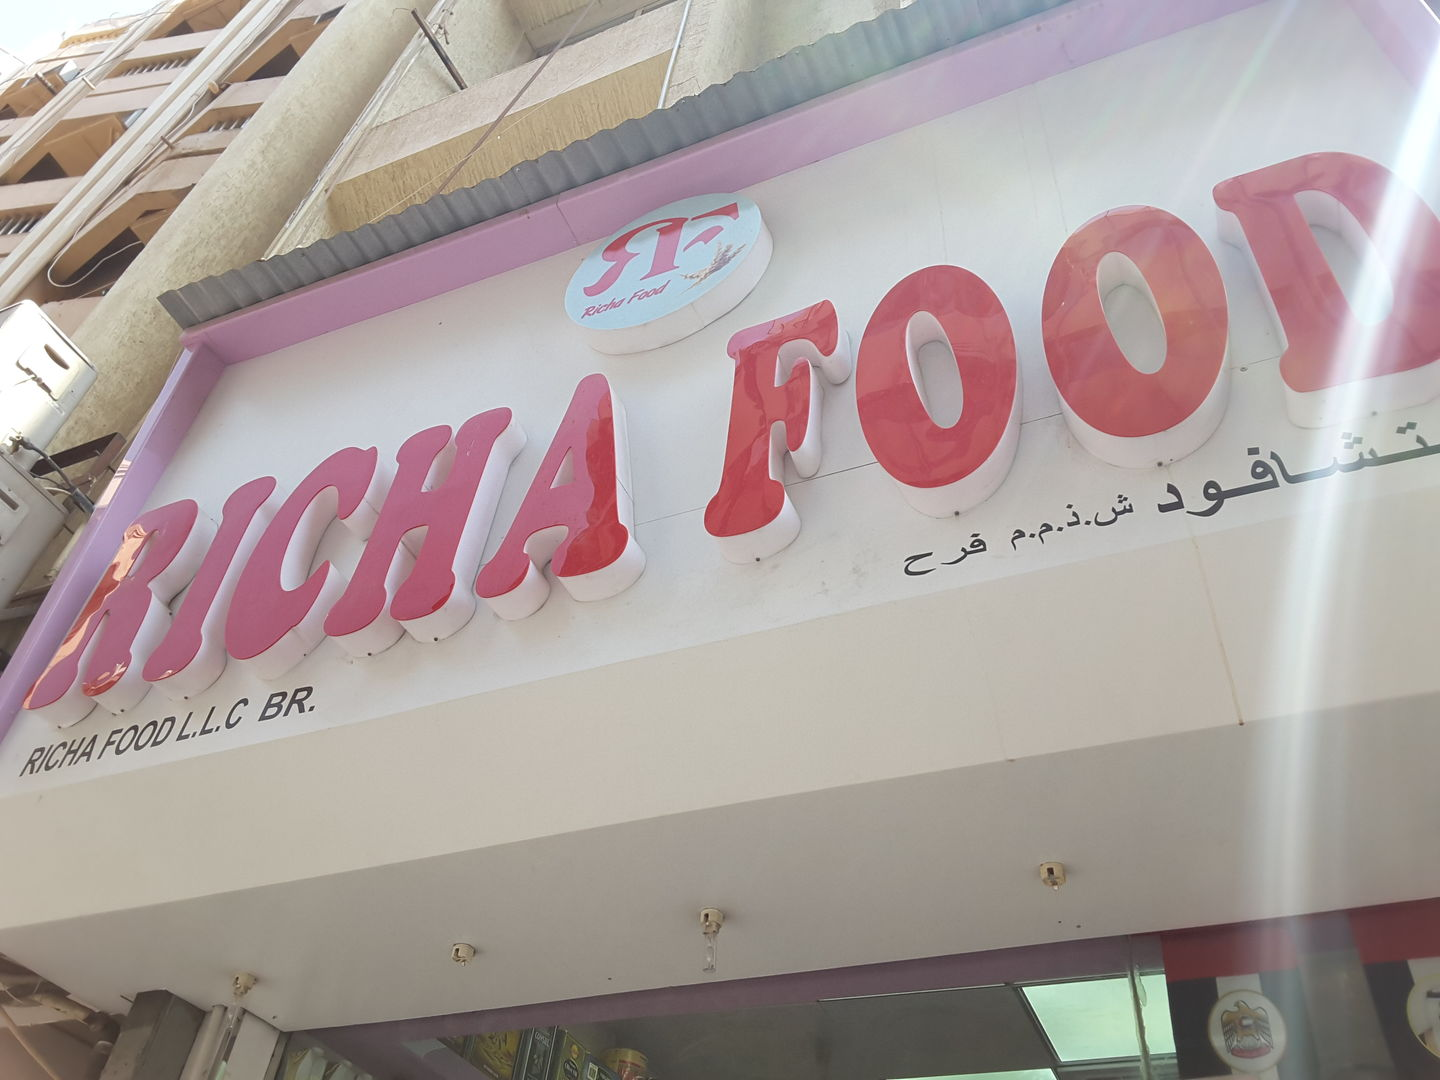 HiDubai-business-richa-food-b2b-services-food-stuff-trading-al-ras-dubai-5